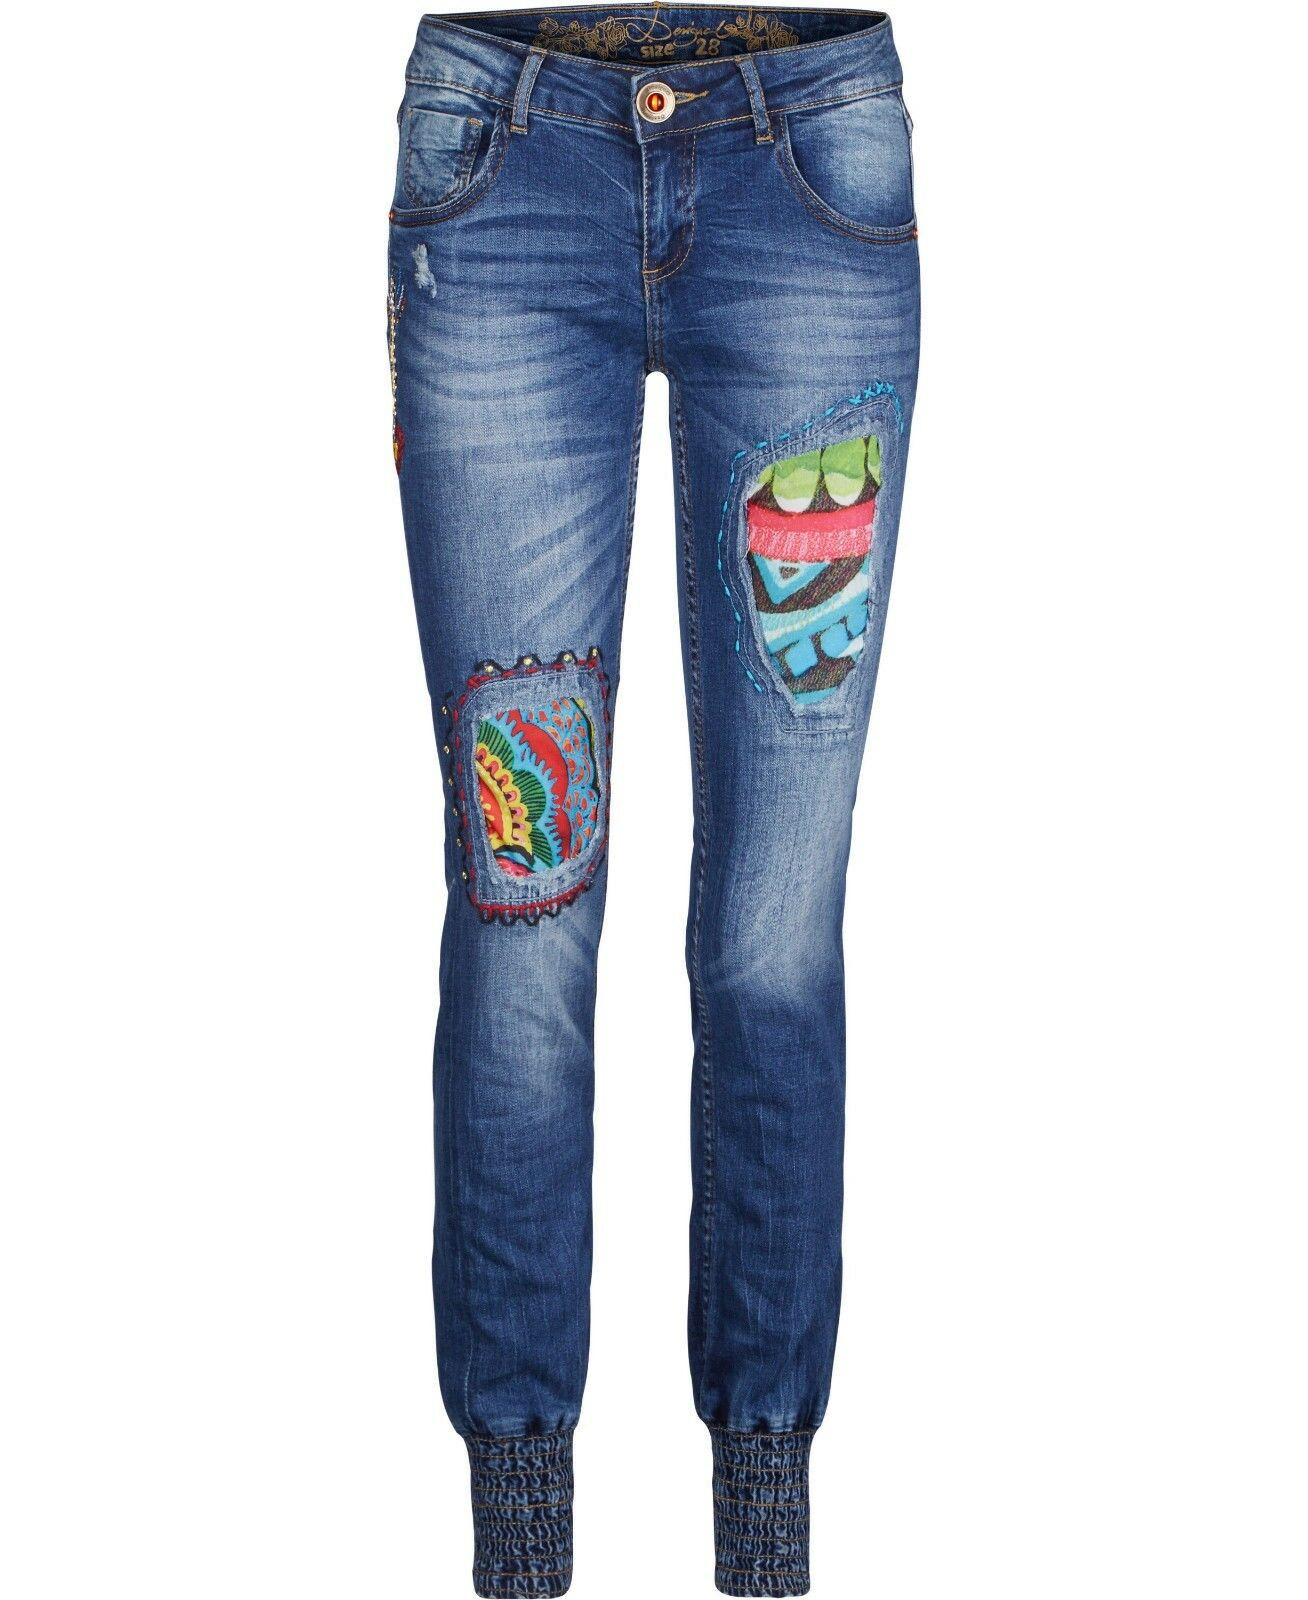 DESIGUAL AFRICA ARROW REP JEANS- SIZE USA (0)- blueE JEANS- BRAND NEW